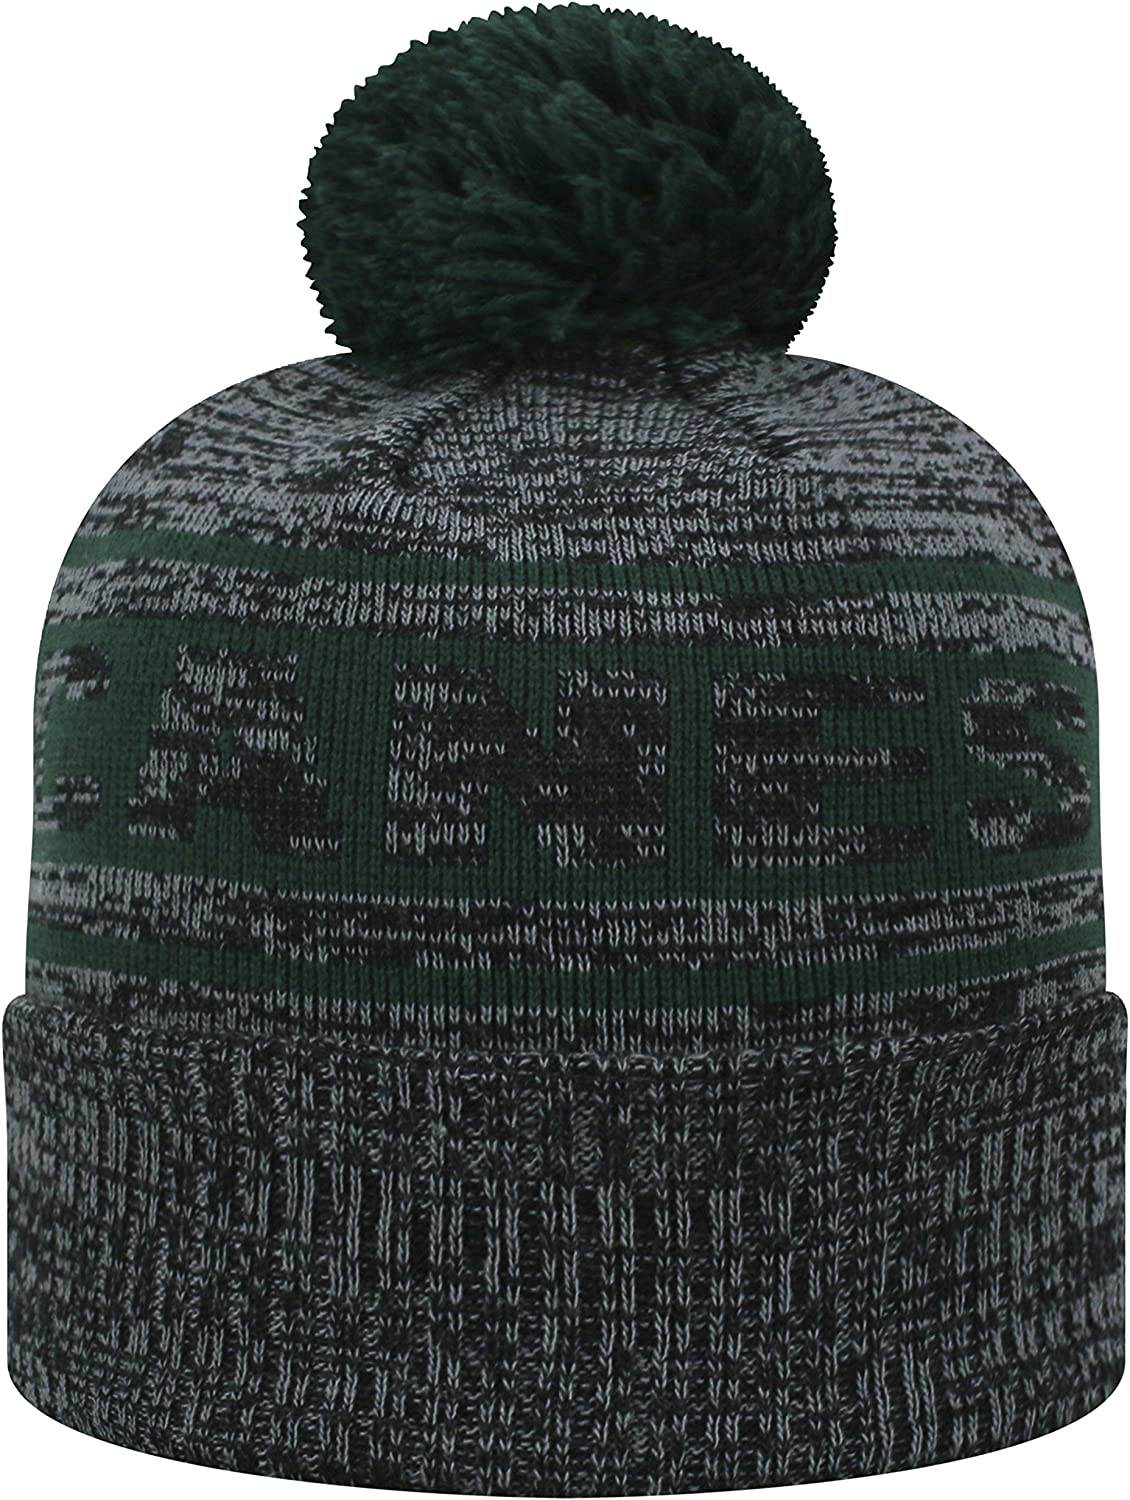 Top of the World Miami Hurricanes Official NCAA Cuffed Knit Sockit to Me Stocking Stretch Sock Hat Cap 468778